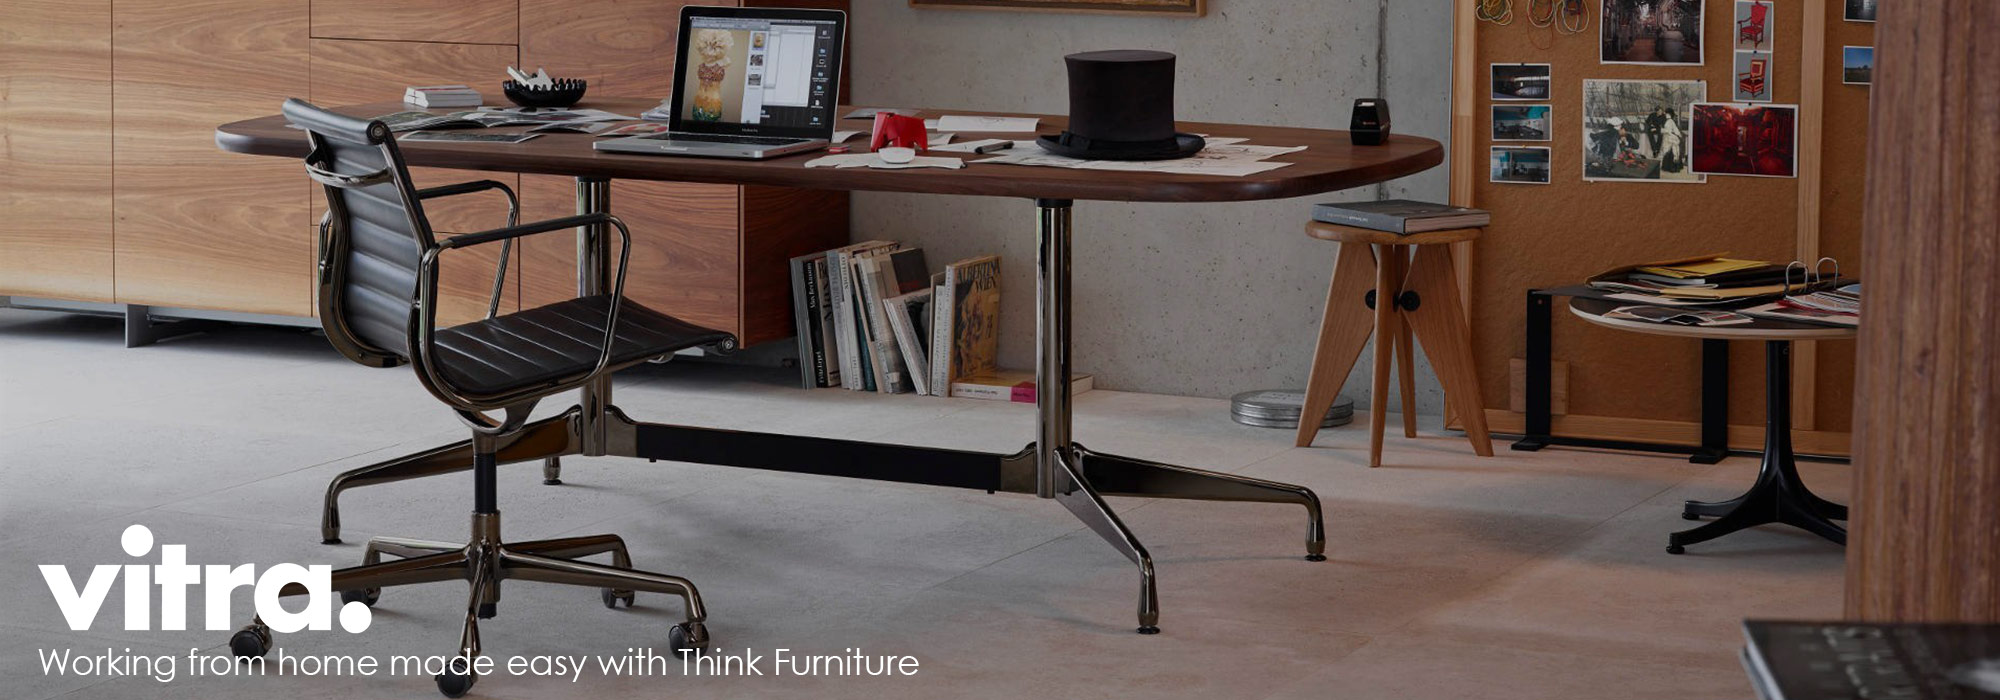 Work From Home With Think Furniture